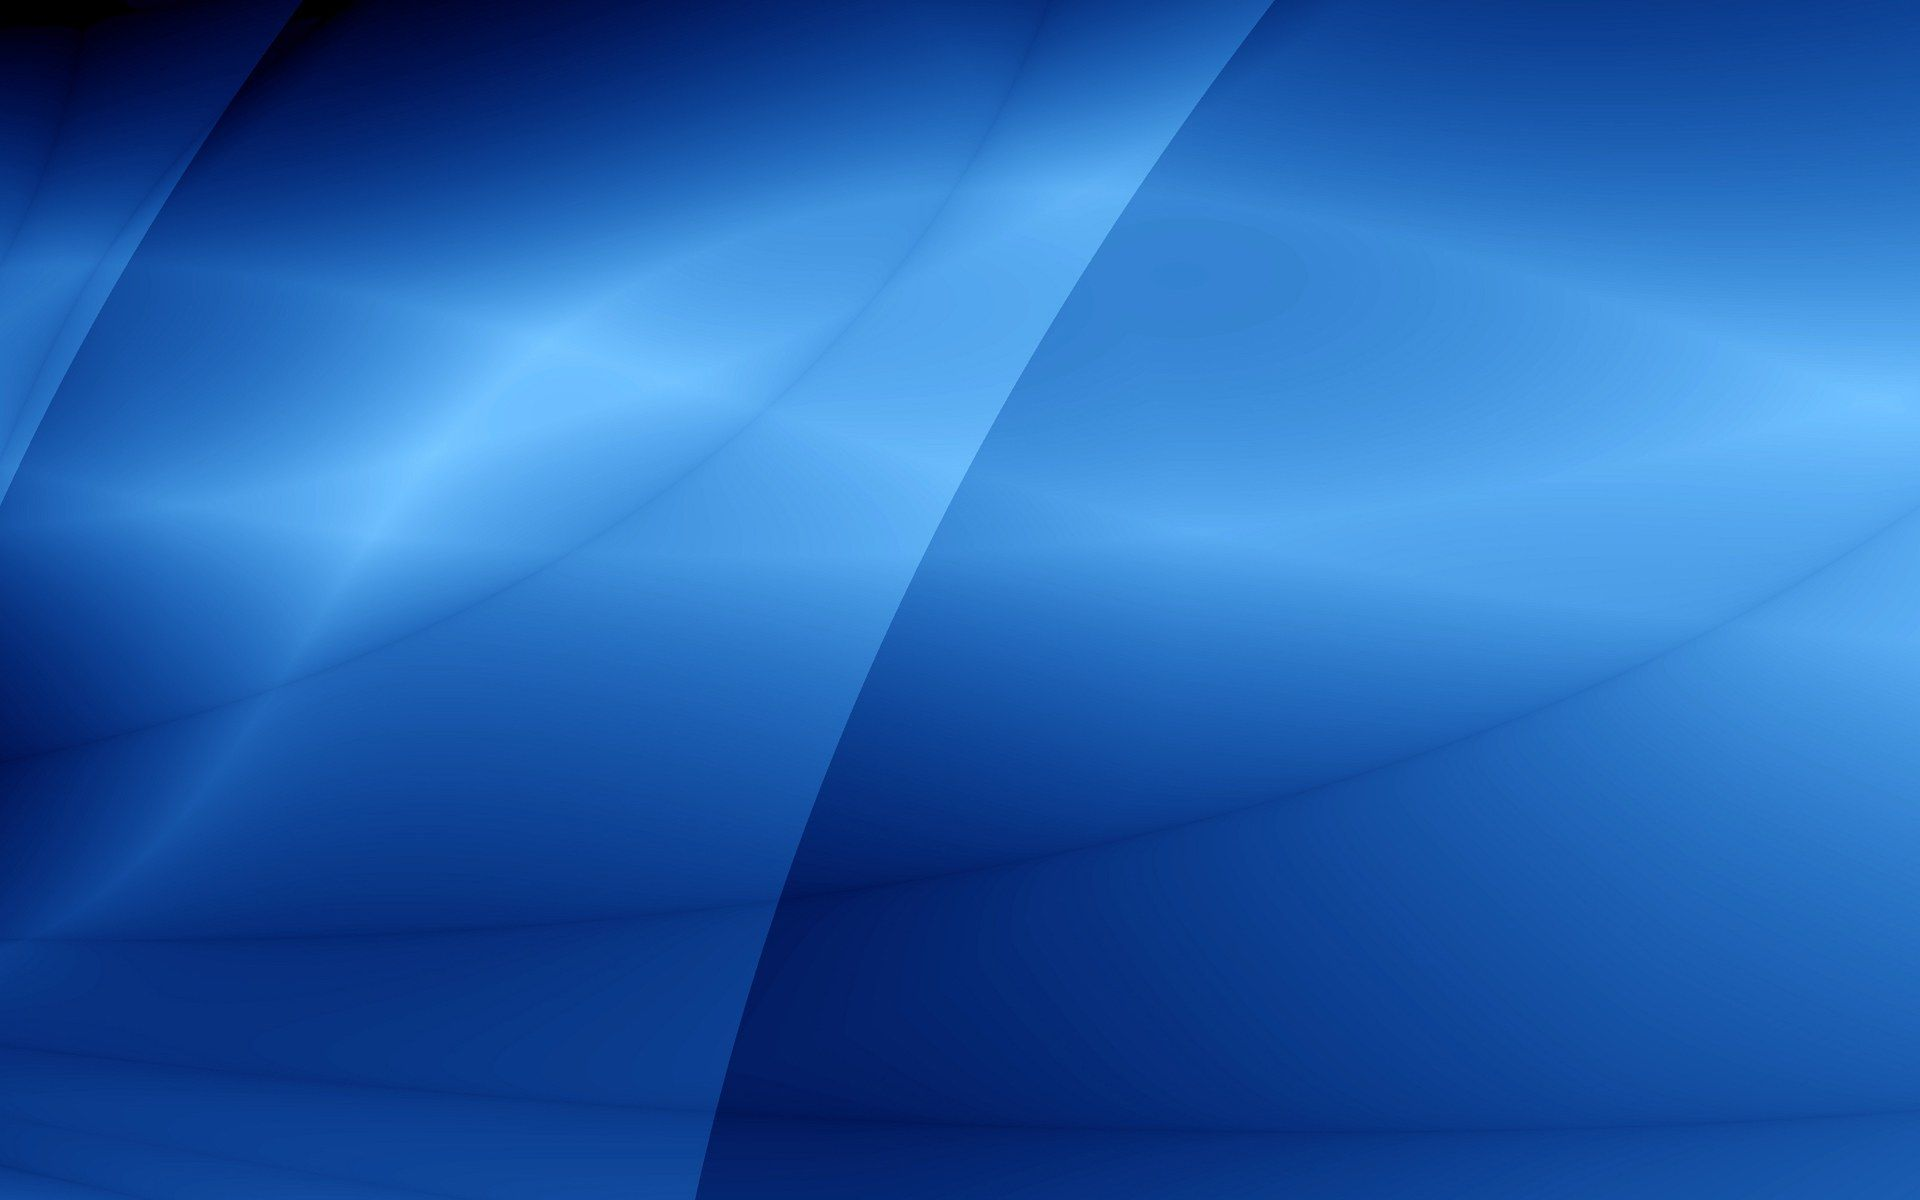 Blue Abstract Background 2042 Hd Wallpapers in Abstract - Imagesci ...